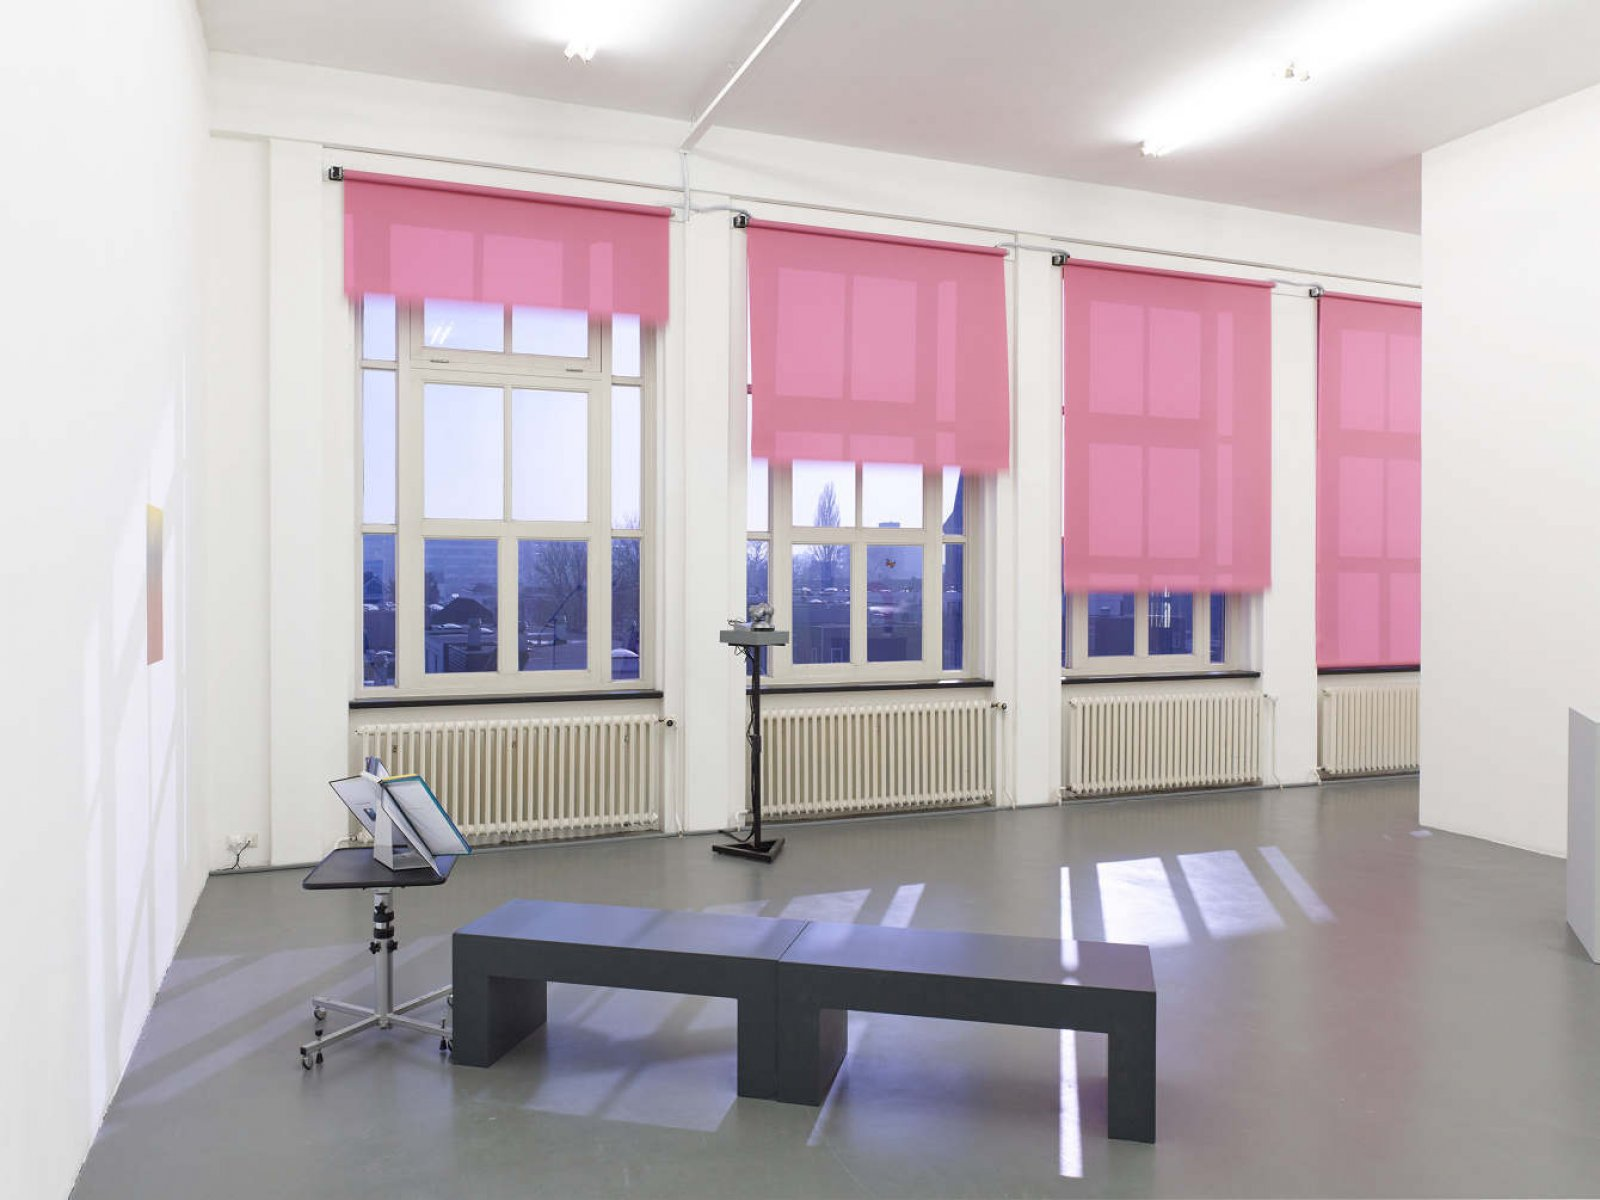 ​Judy Radul, installation view, ​​the king, the door, the thief, the window, the stranger, the camera, Witte de With, Rotterdam, 2017​ by Judy Radul